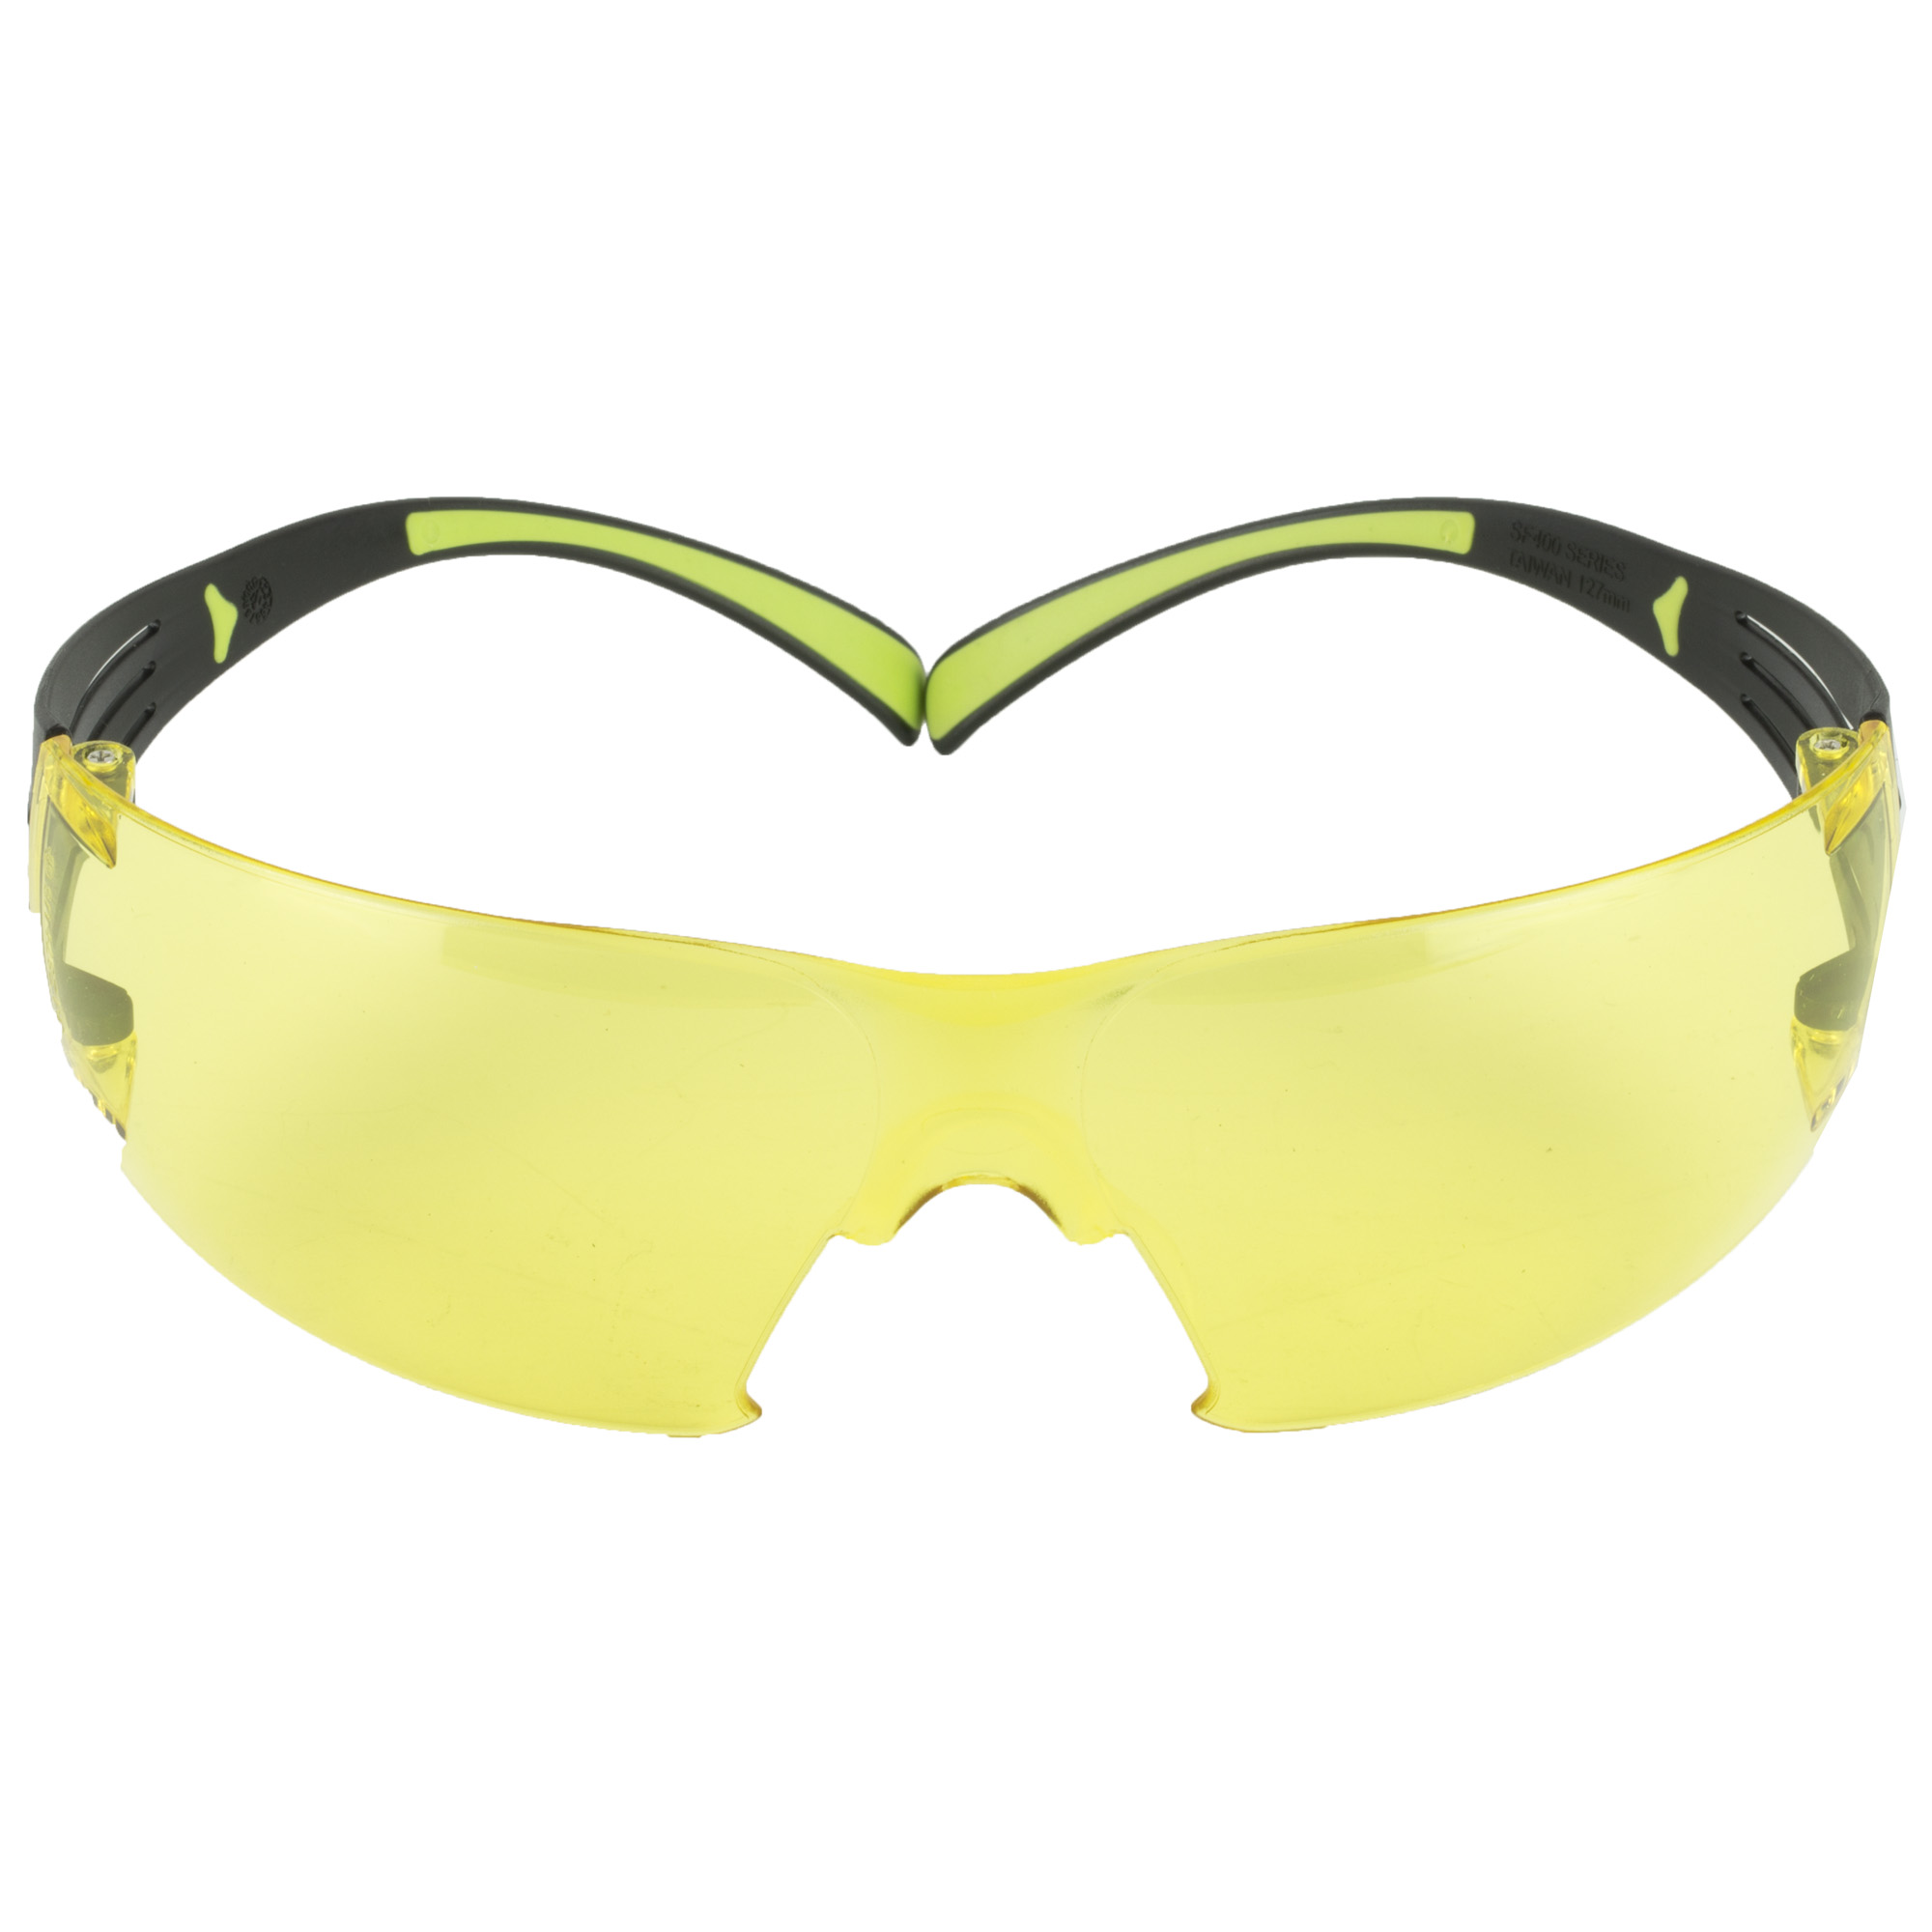 """The SecureFit 400 Series features soft adjustable nose pads"""" dual injected temples"""" and proprietary 3M Pressure Diffusion Temple Technology that helps diffuse pressure over the ear to enhance frame comfort while not compromising the security of fit across a diverse workforce."""